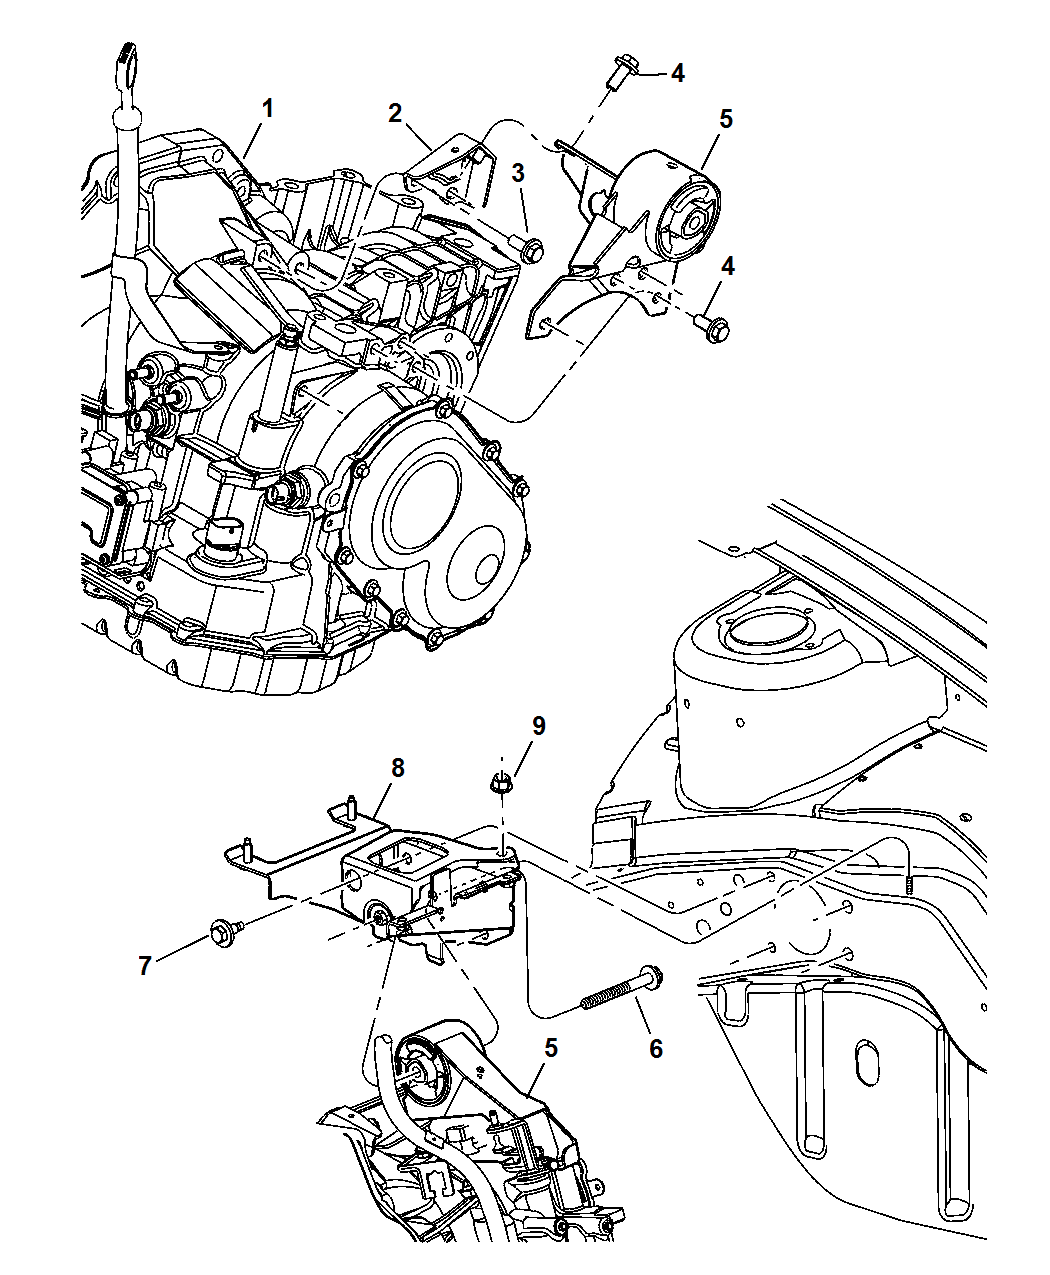 2004 dodge neon engine mount diagram - wiring diagrams auto rock-board -  rock-board.moskitofree.it  moskitofree.it